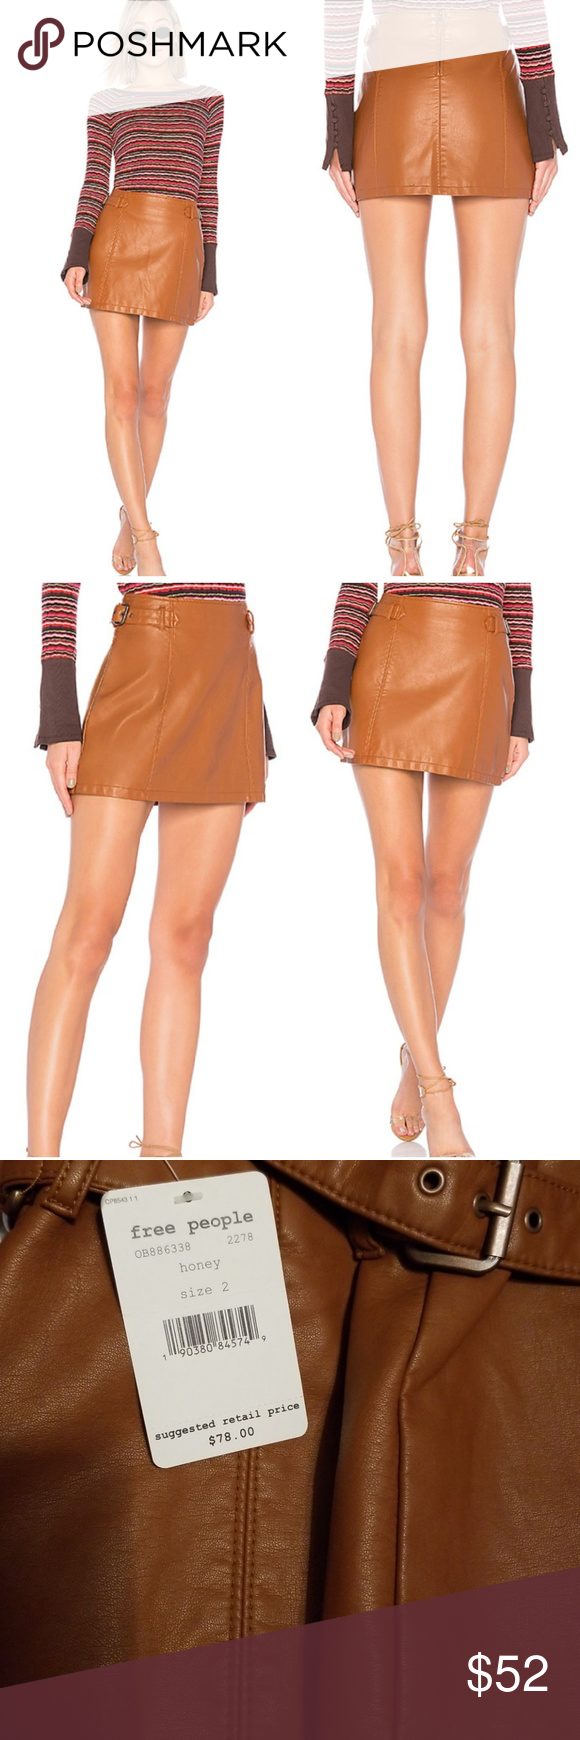 712ab9d0c NWT Free People Charli Vegan Skirt in Honey Brand new with tag! Size ...